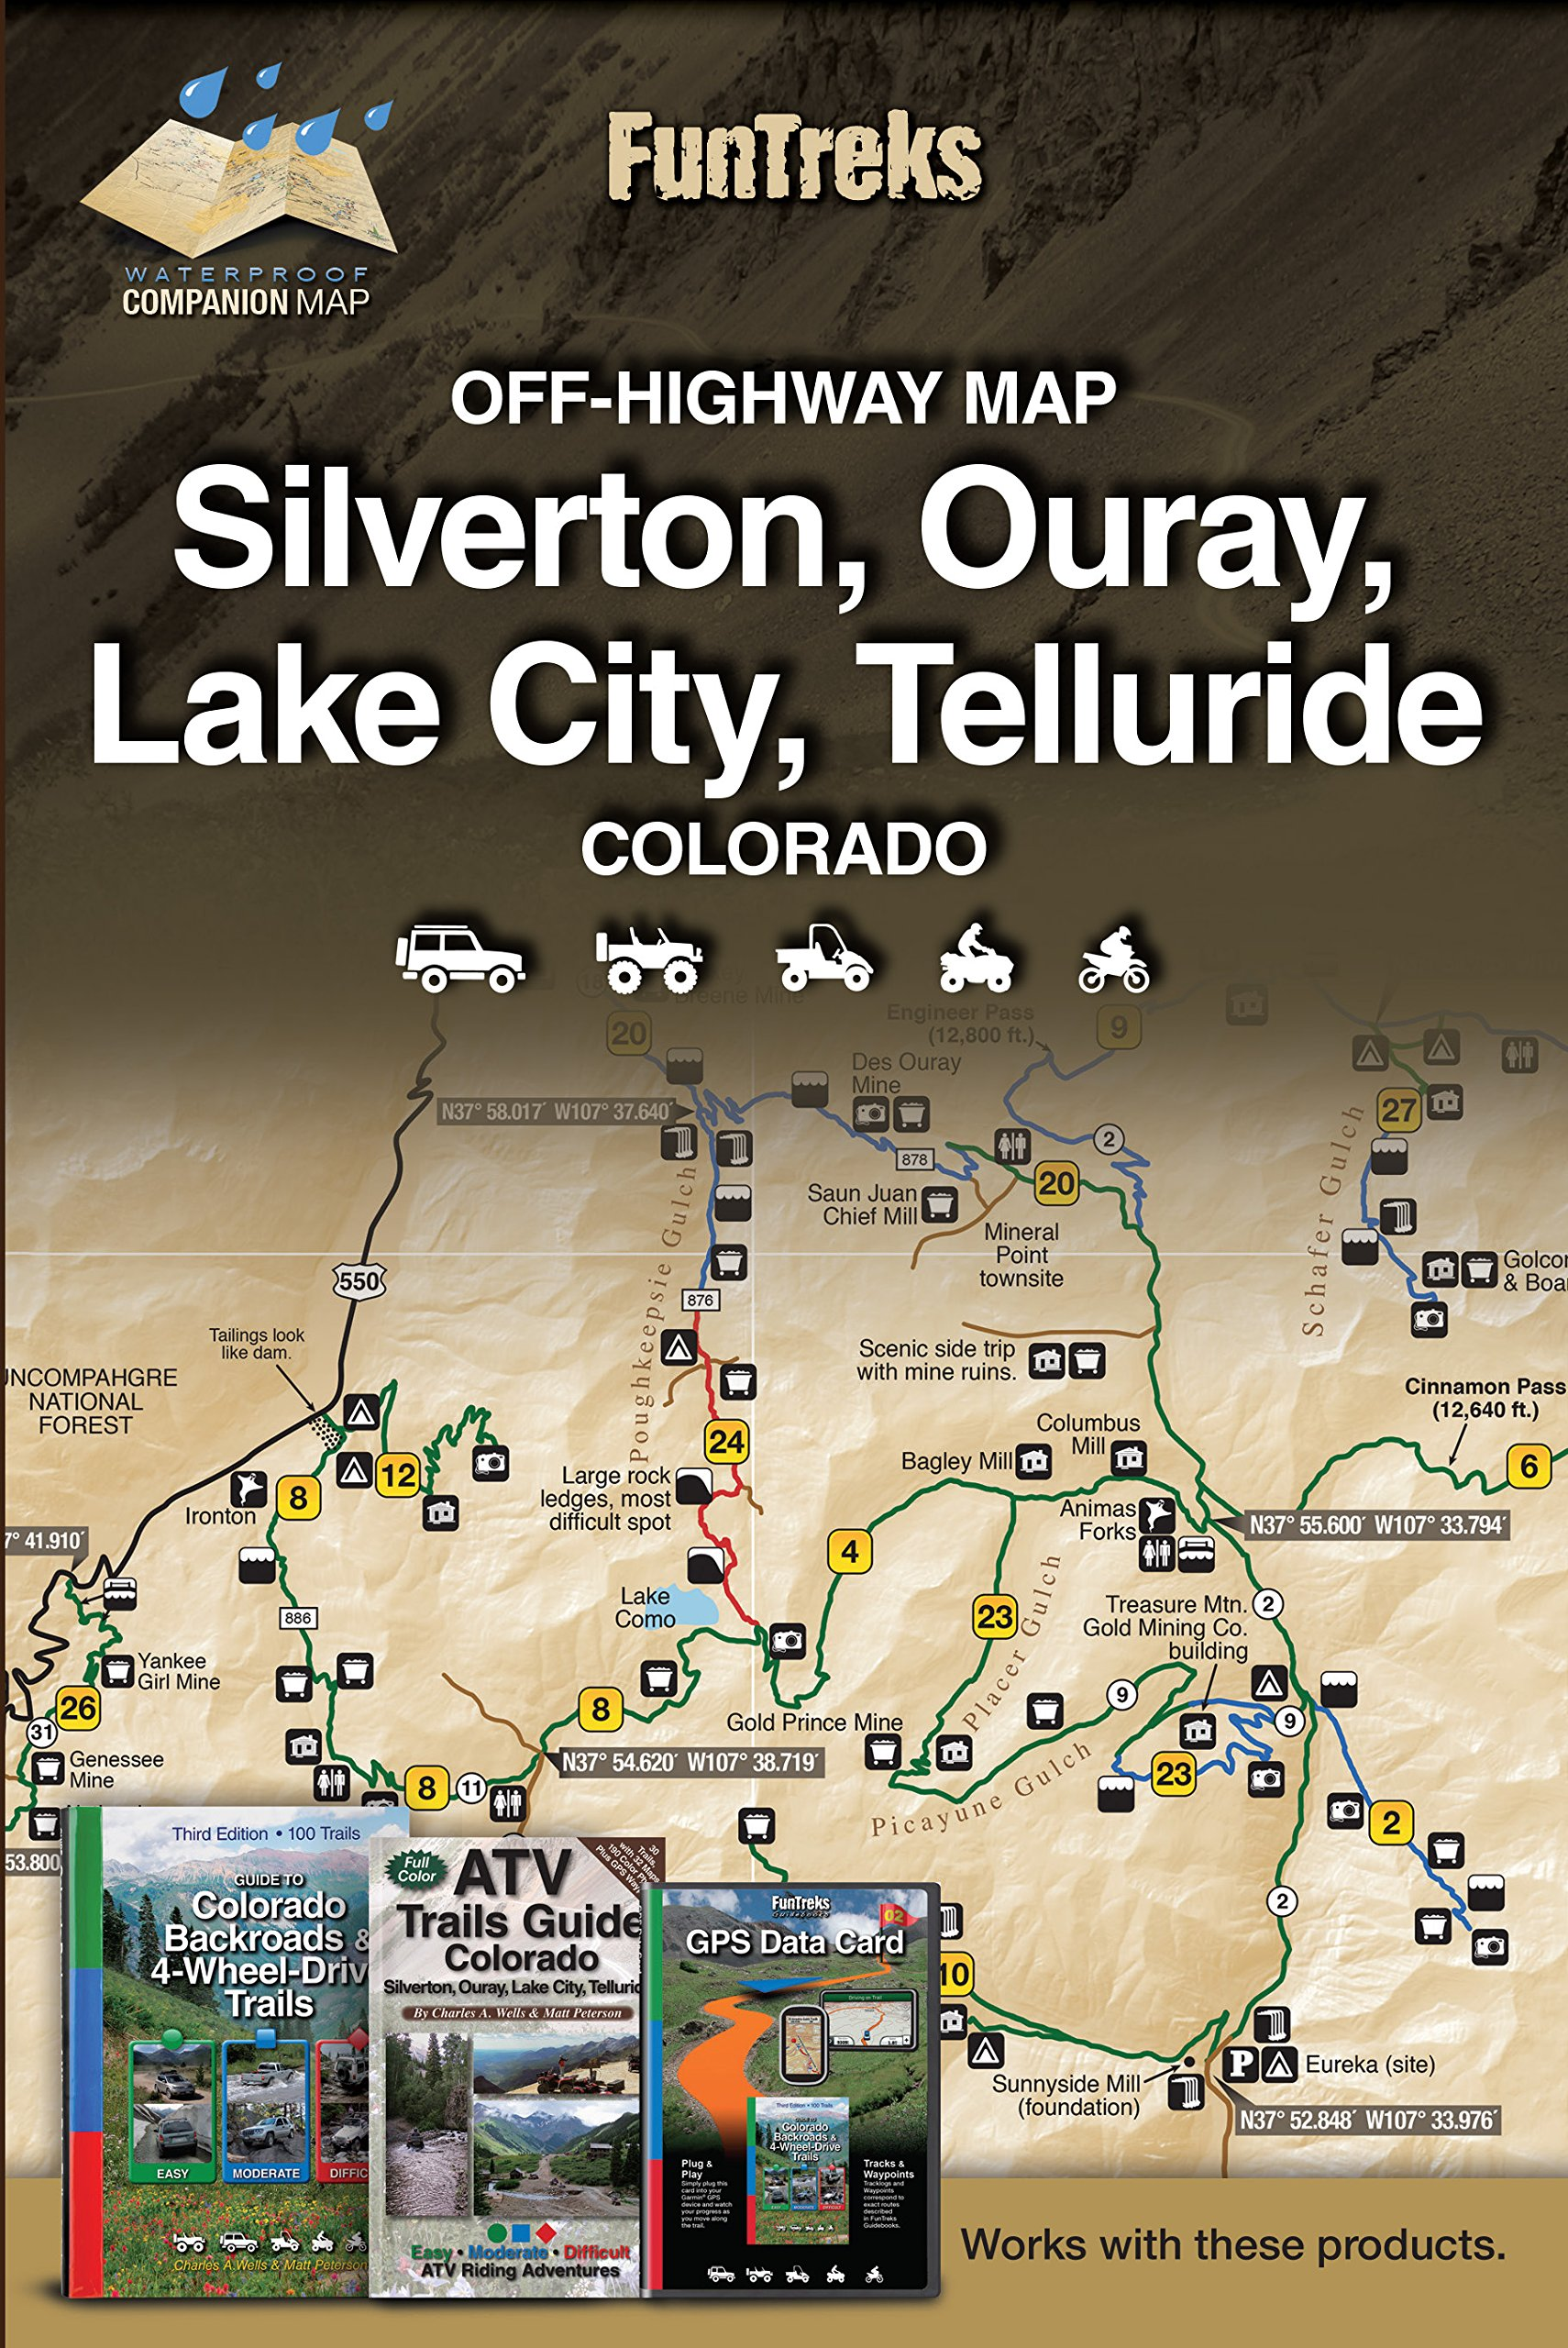 Off-Highway Map for Silverton, Ouray, Lake City, Telluride Colorado ...